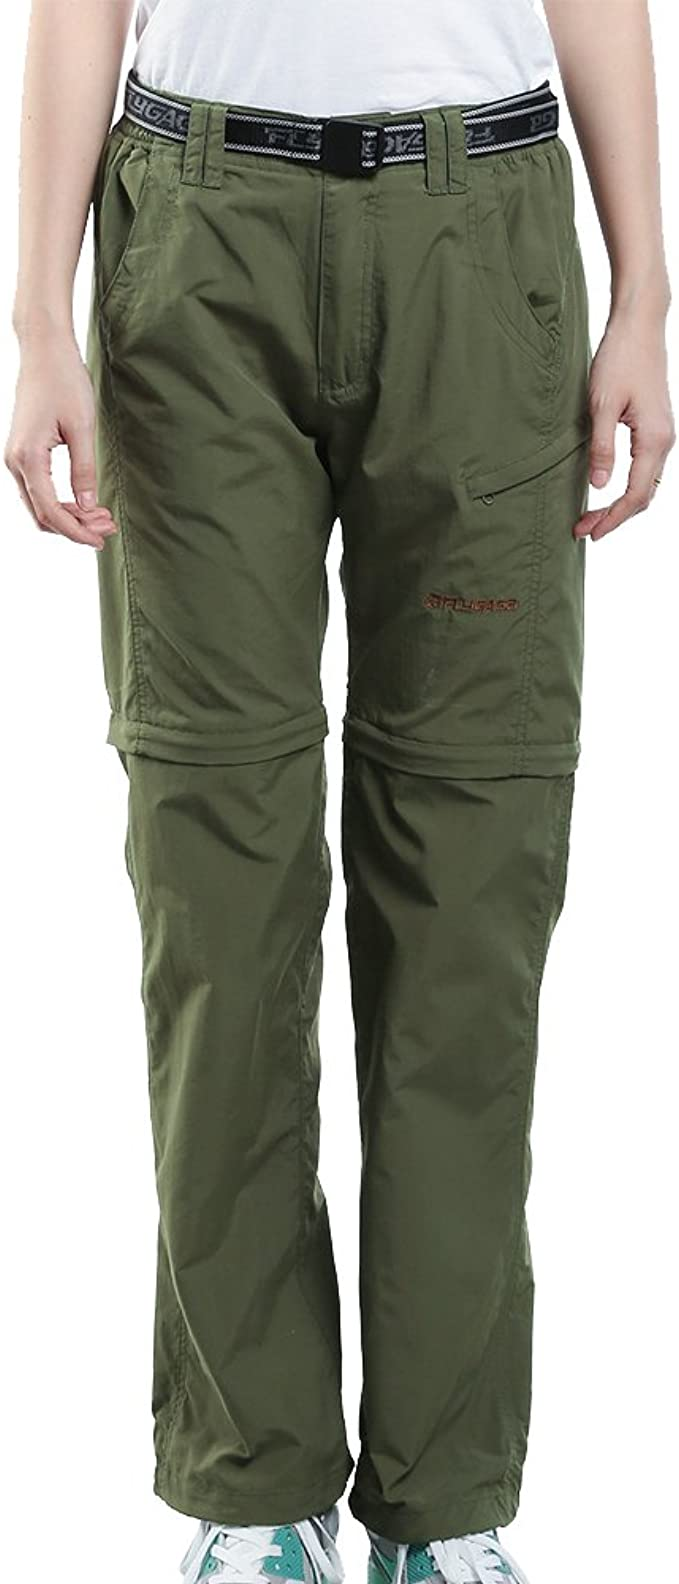 Nonwe Womens Outdoor Water-Resistant Quick Dry Convertible Cargo Pants